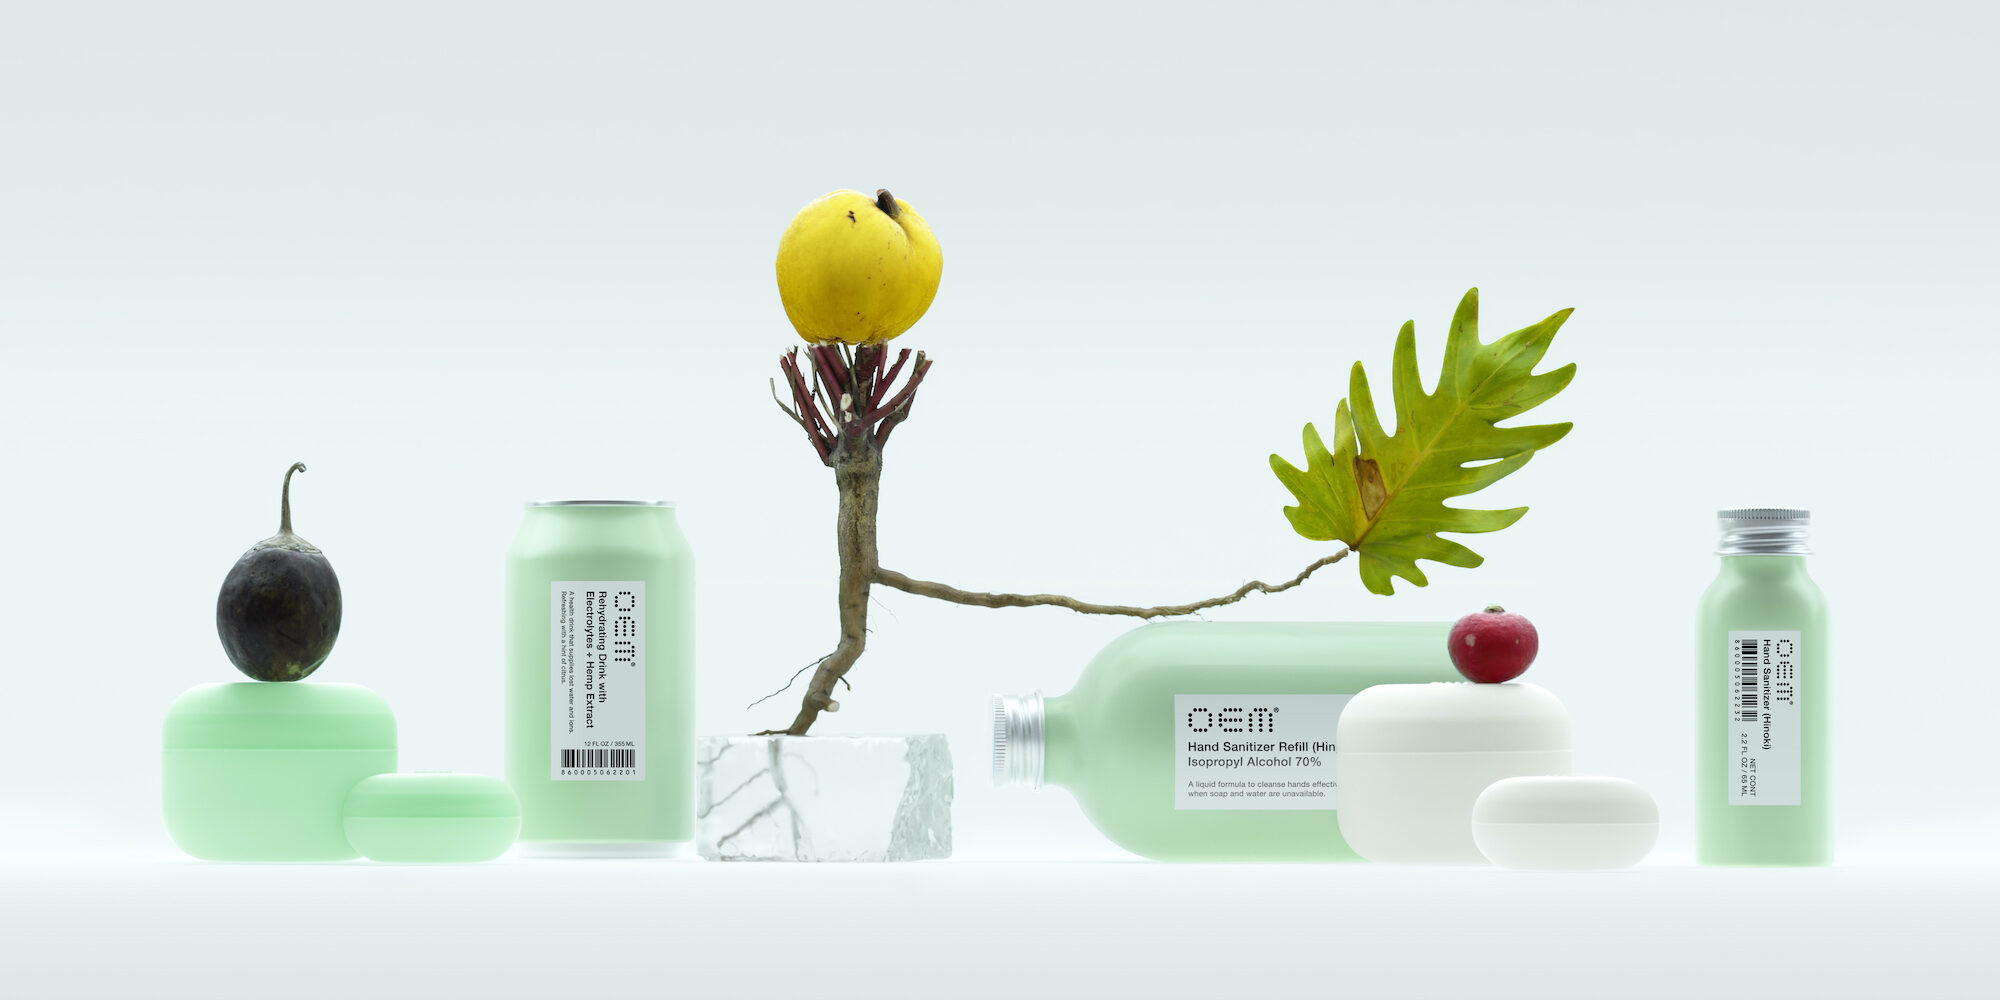 Japanese-Inspired Brand OEM Is Out To Upgrade Drugstore Remedies